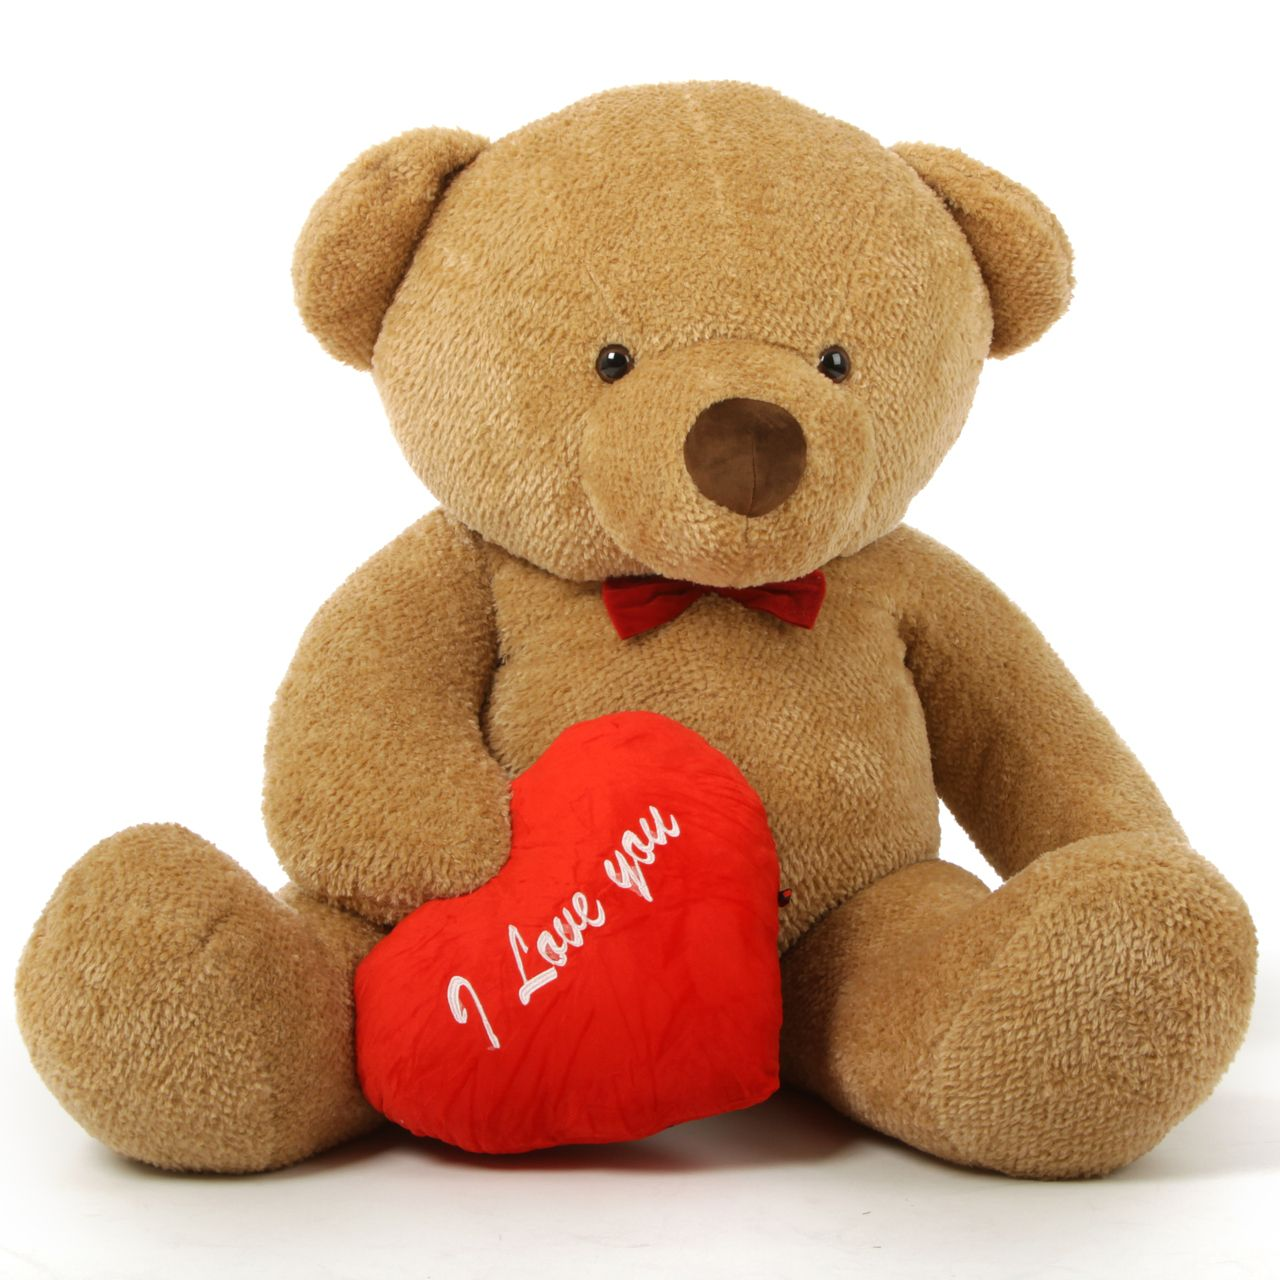 60in chubs giant valentines day teddy bears hold red i love you - Giant Teddy Bear For Valentines Day